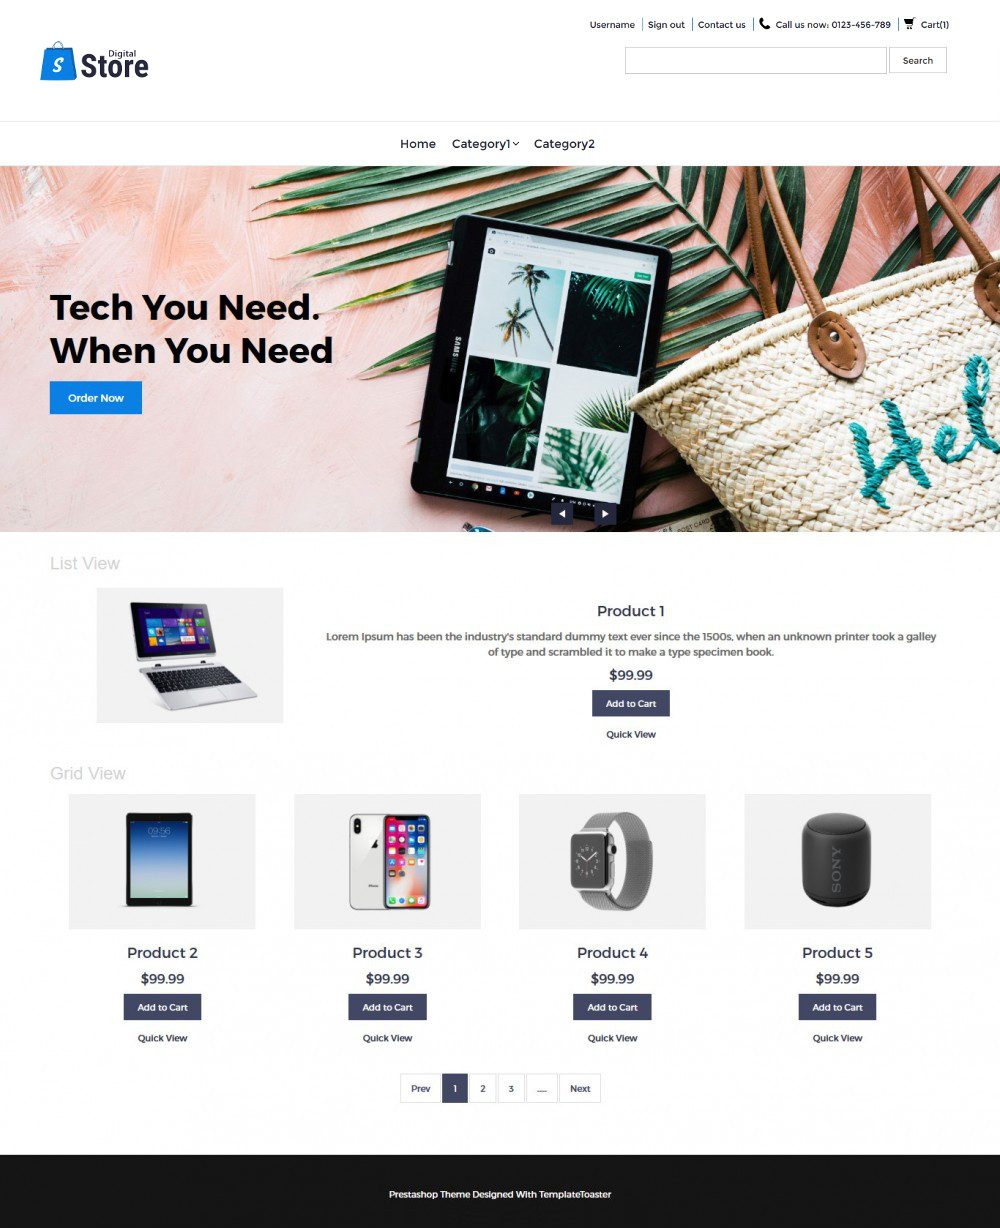 Digital Store Digital Products Virtuemart Template